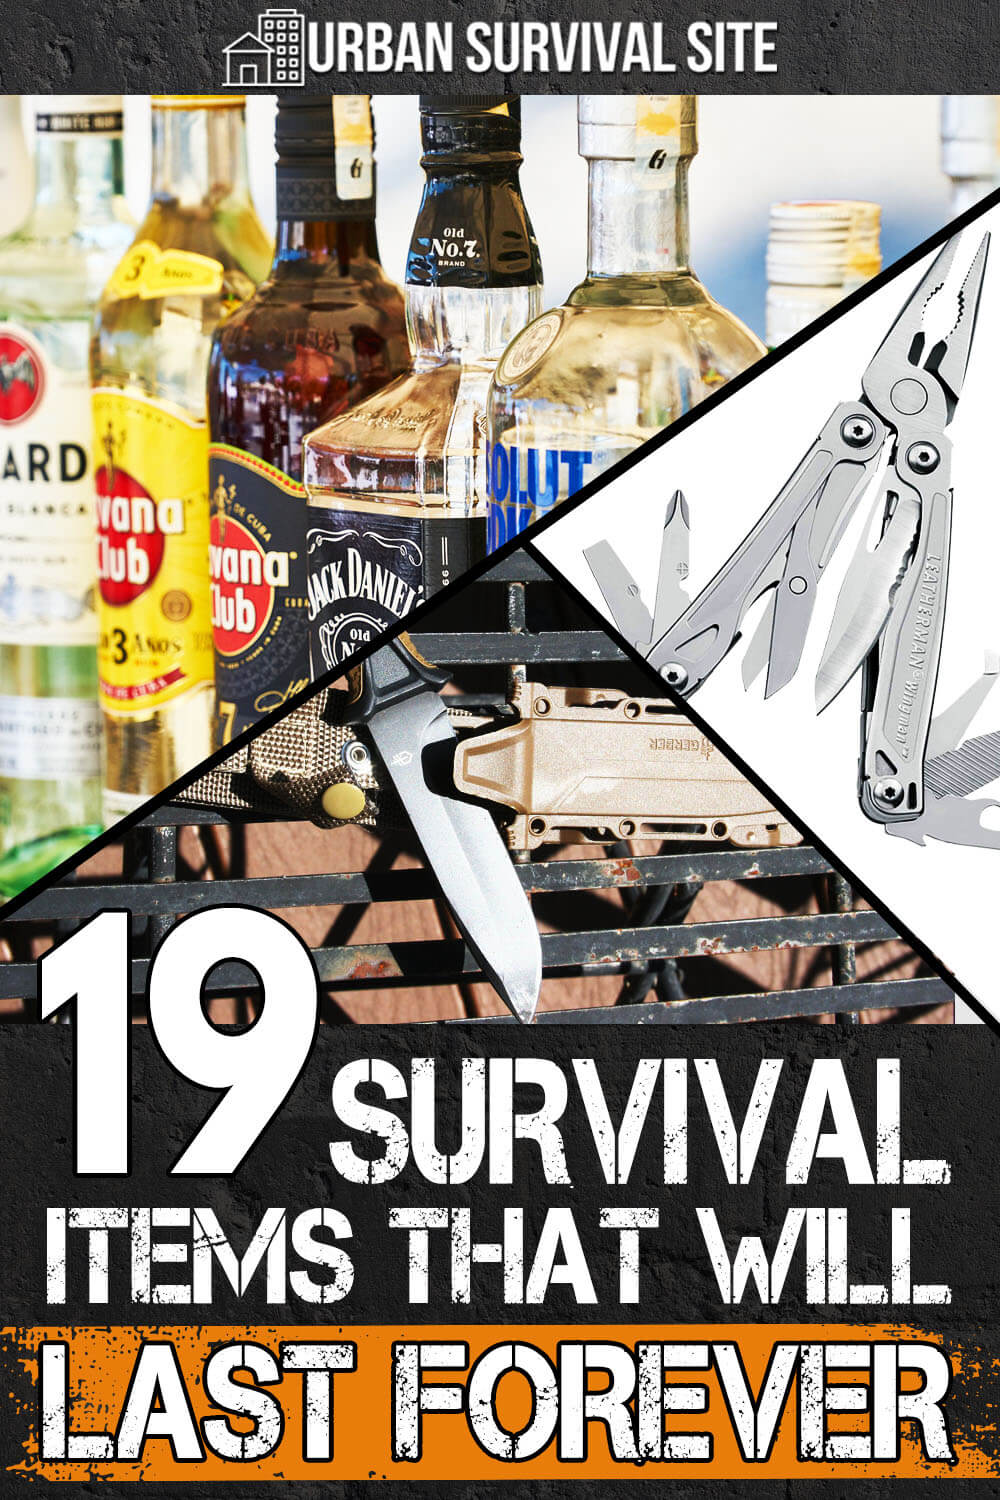 19 Survival Items That Will Last Forever